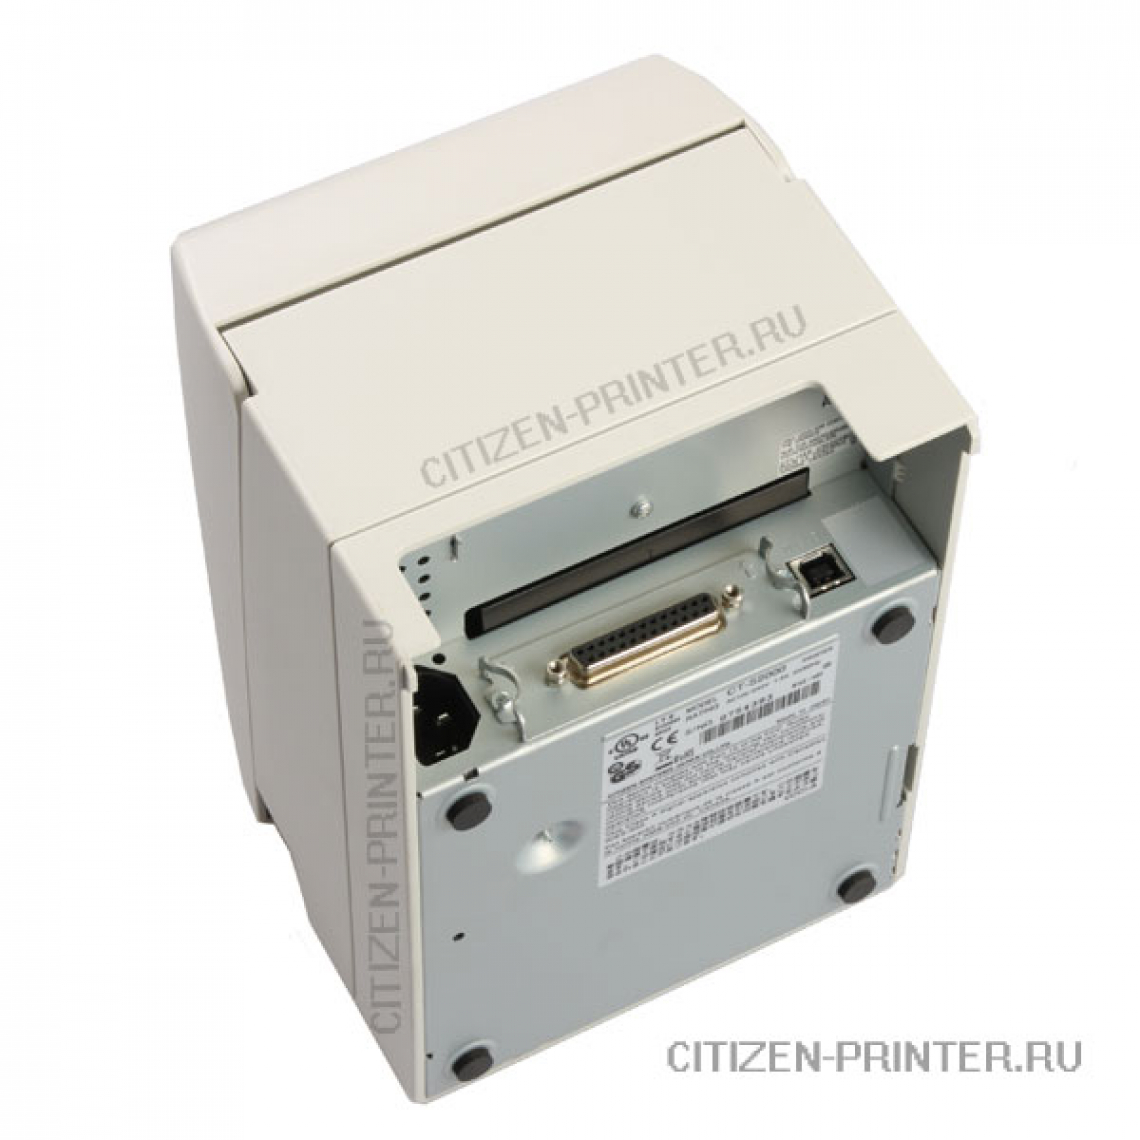 CitizenCTS2000_3 (1)